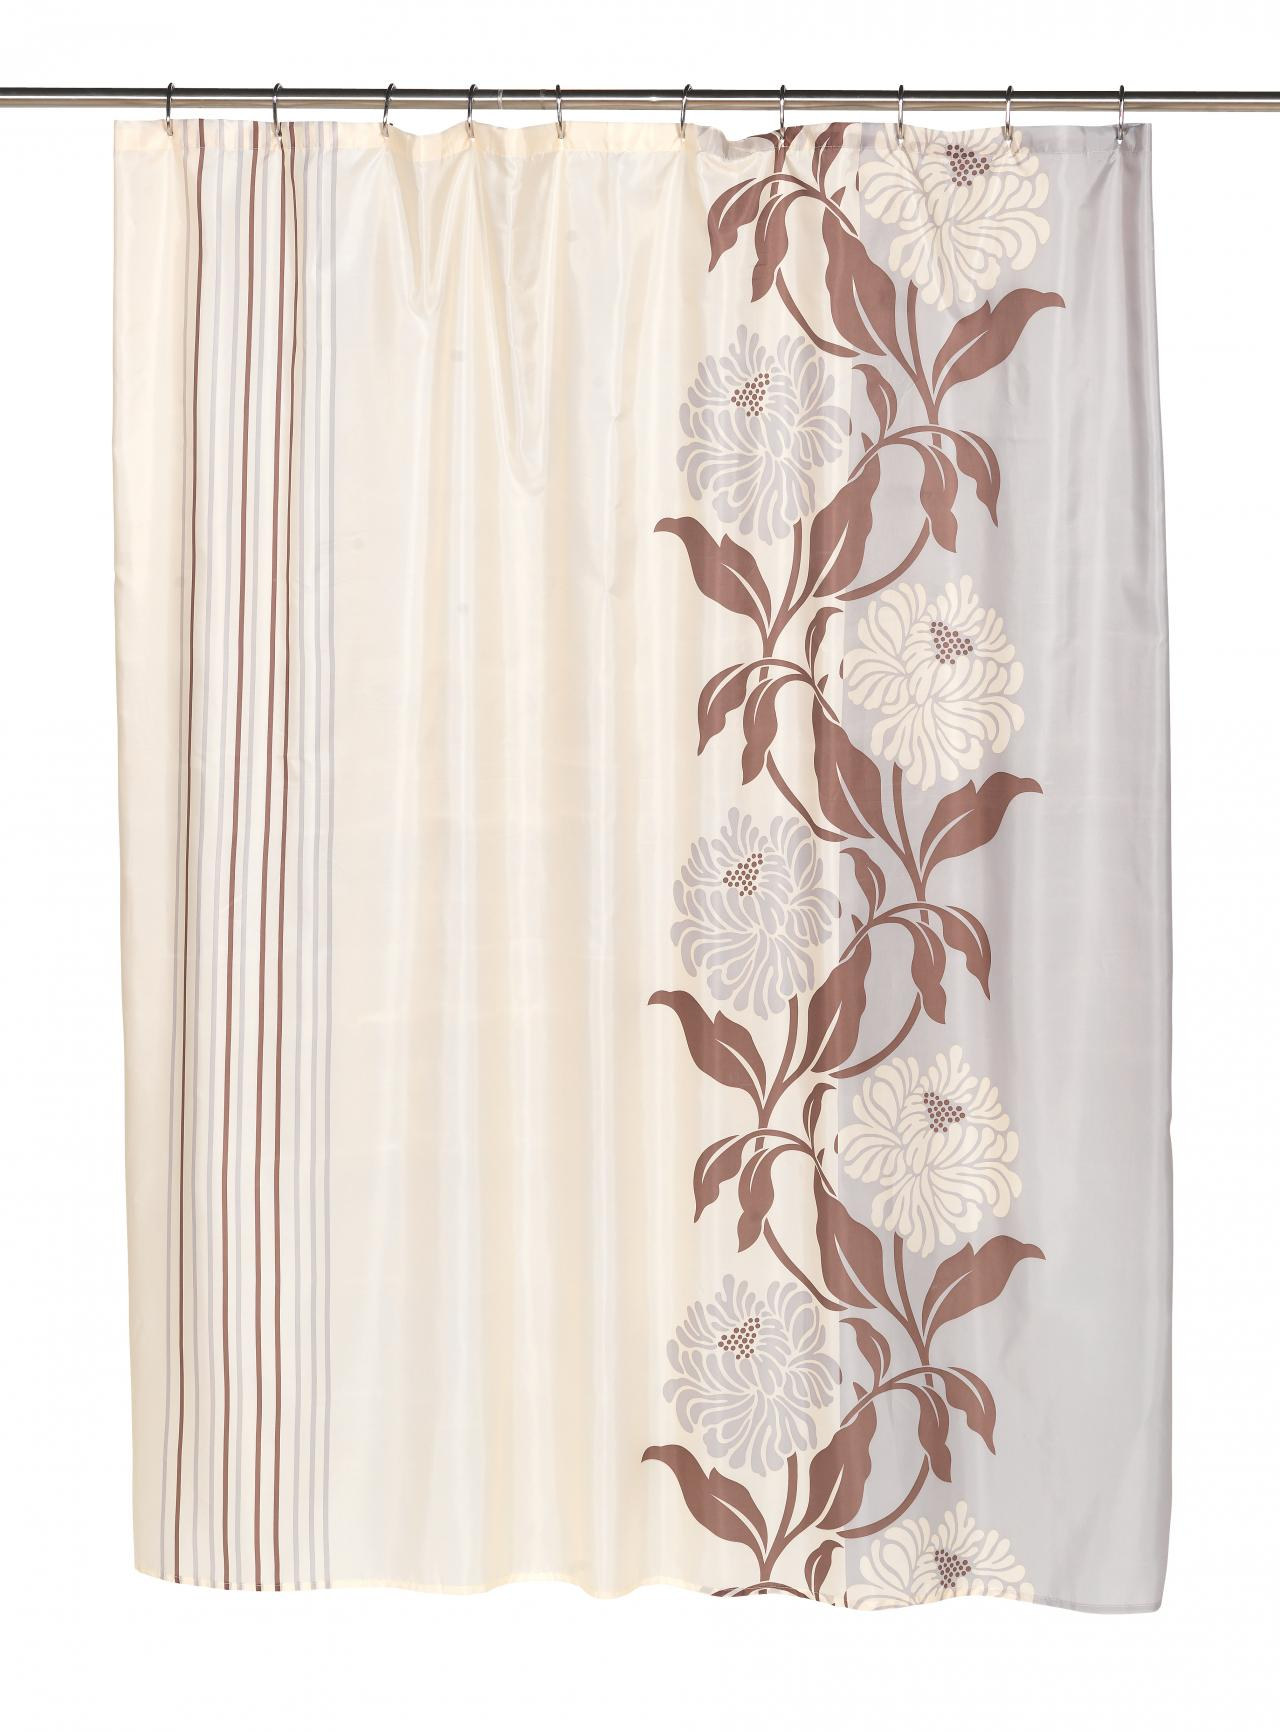 Chelsea Brown Ivory Fabric Shower Curtain 70x72